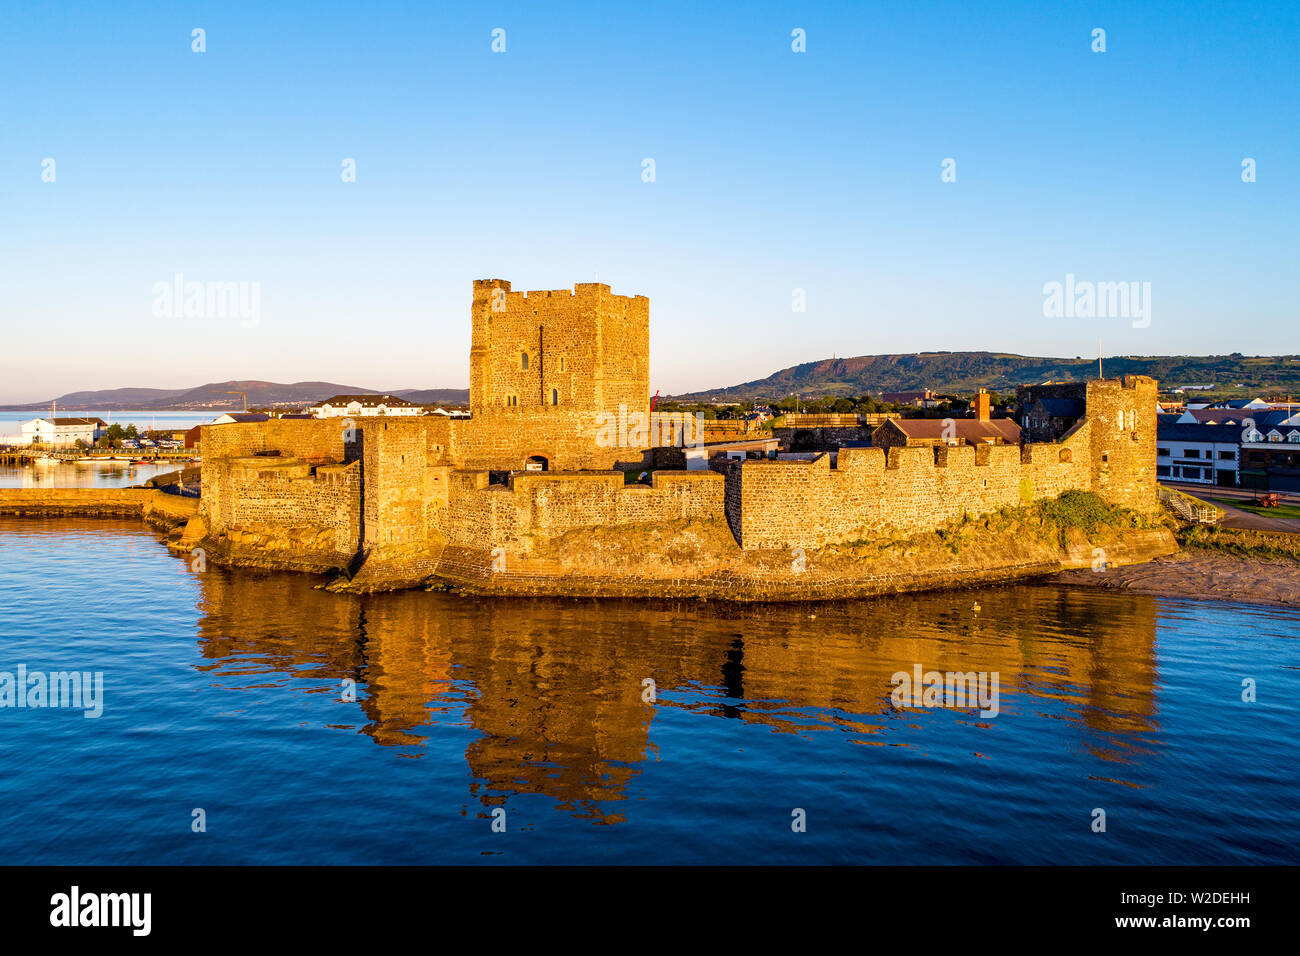 Medieval Norman Castle in Carrickfergus near Belfast in sunrise light. Aerial view with water reflection - Stock Image